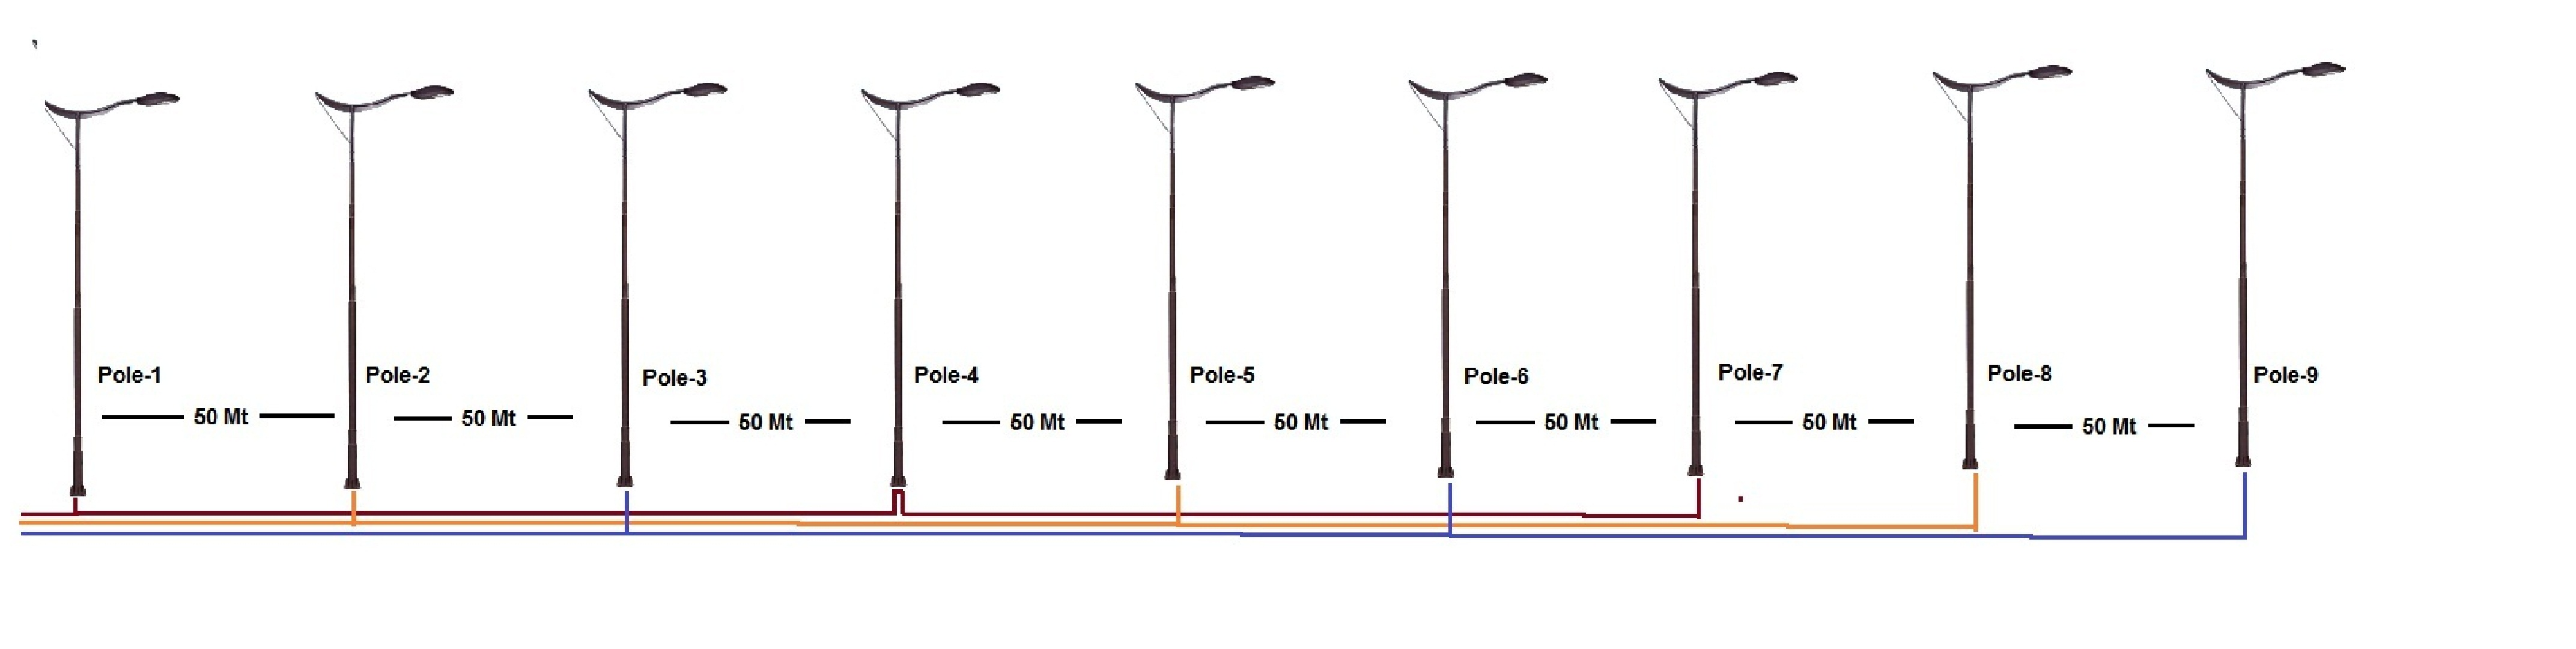 single phase voltage drop formula electric rice cooker wiring diagram calculate cable for street light pole